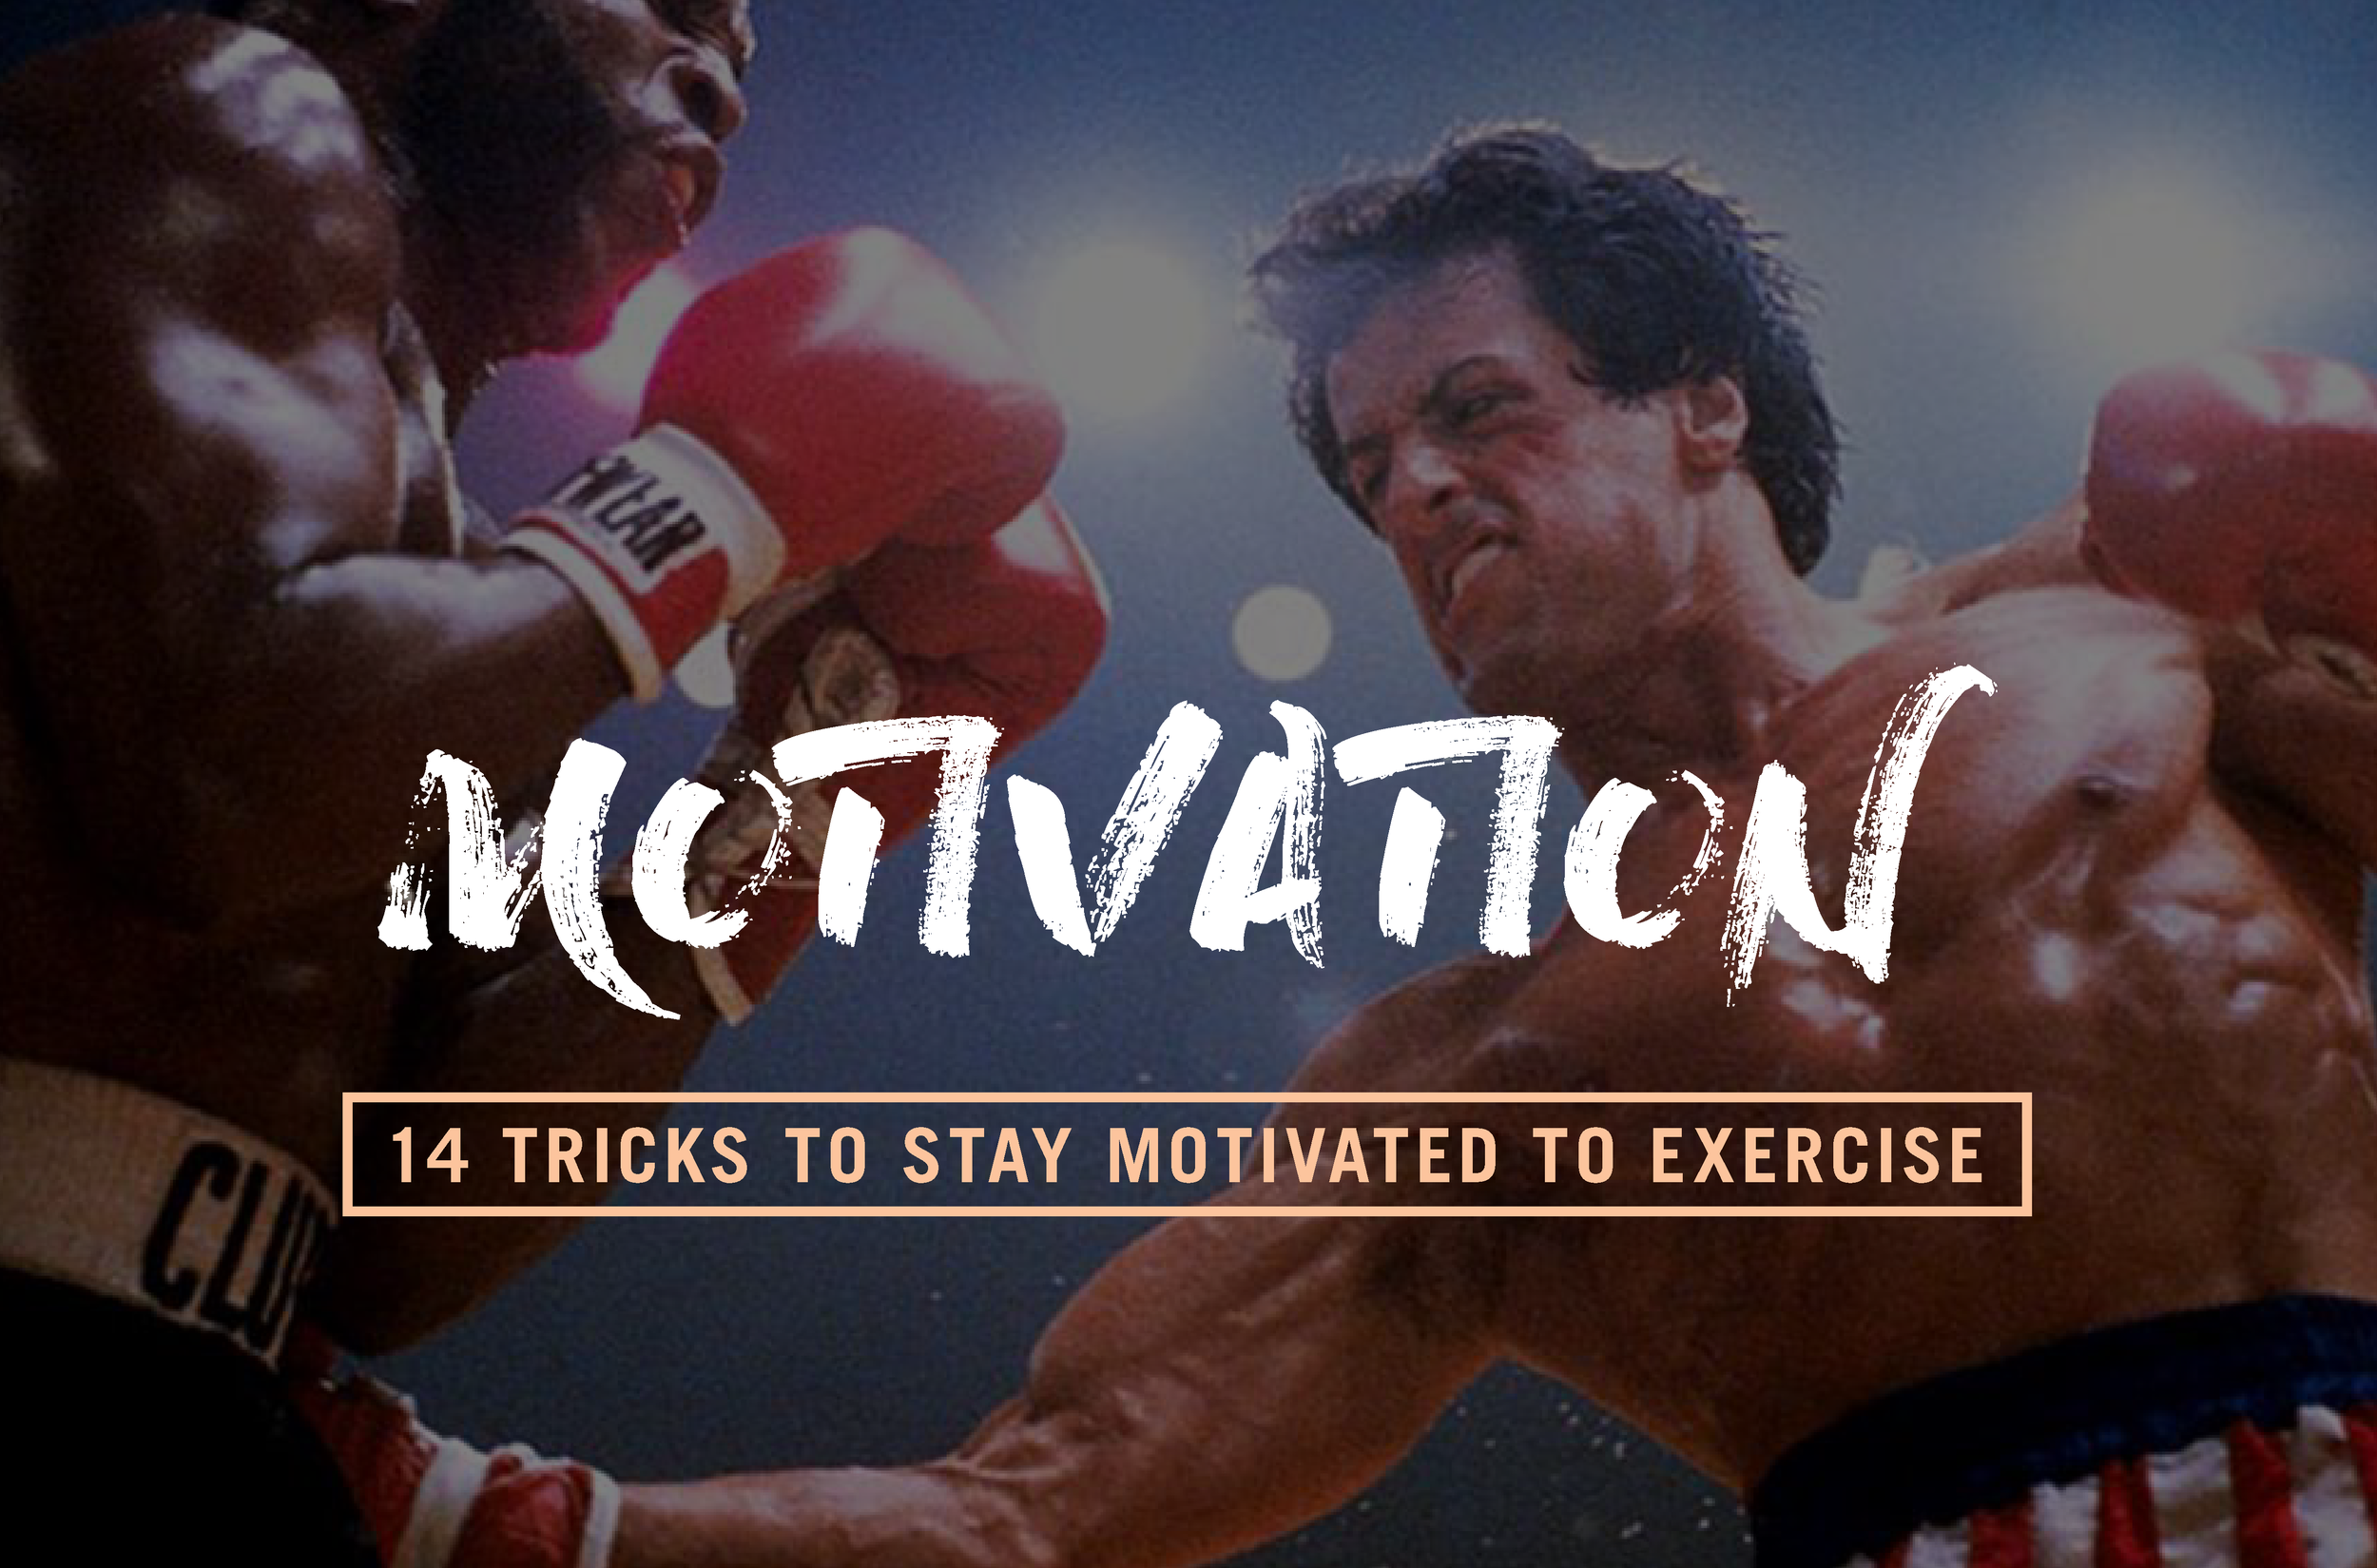 14-tricks-to-stay-motivated-to-exercise.png